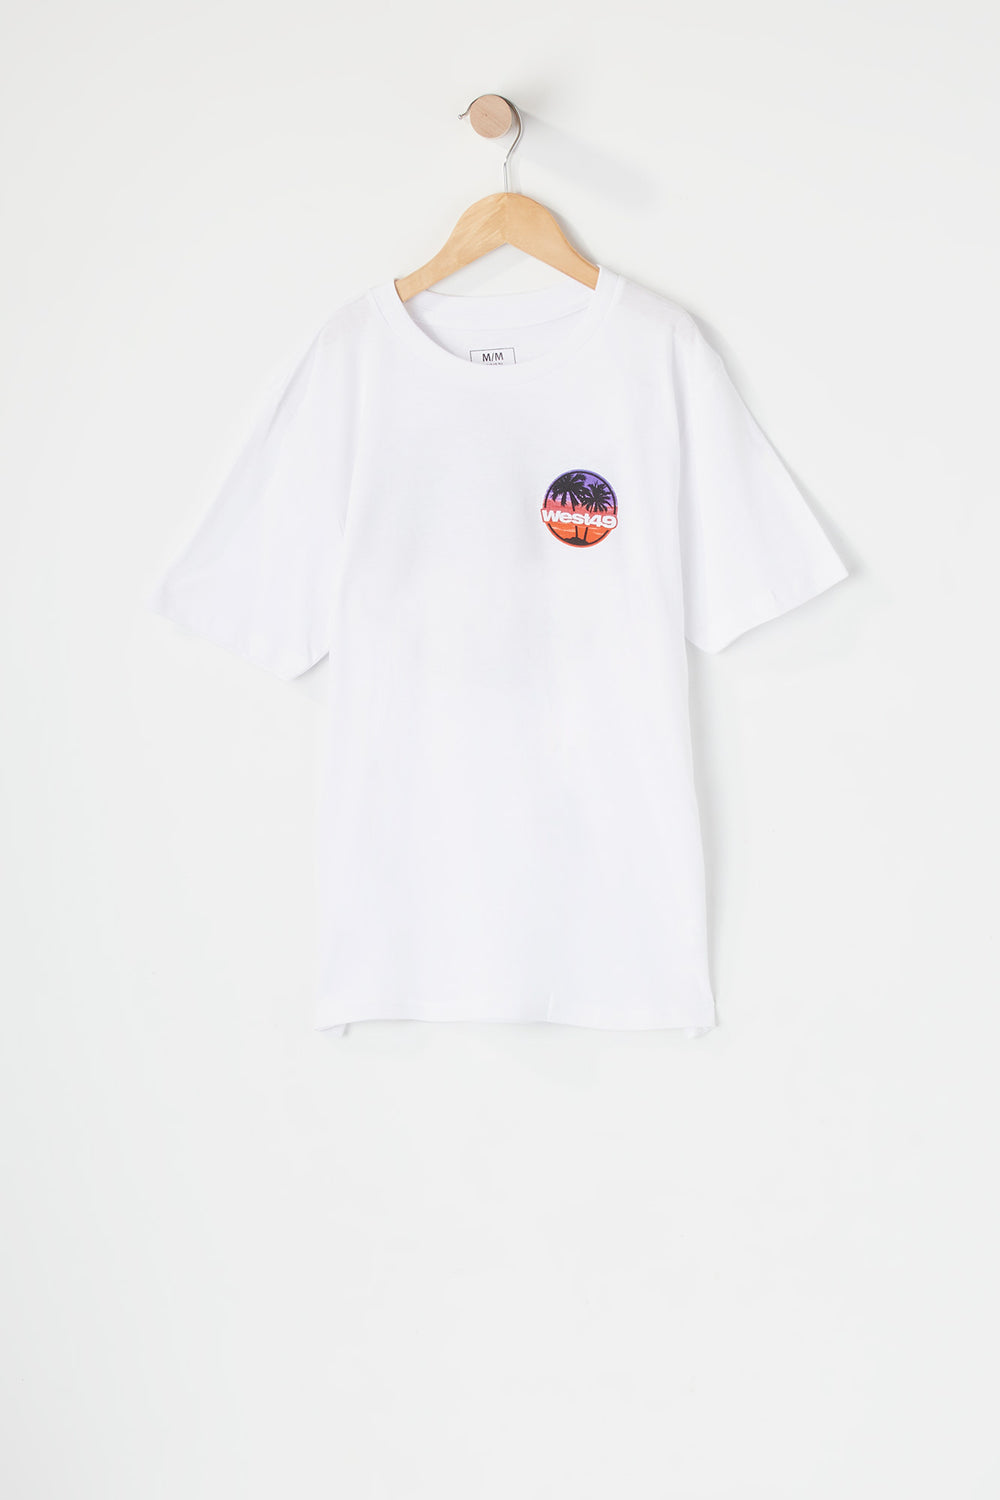 West49 Youth Sunset T-Shirt White